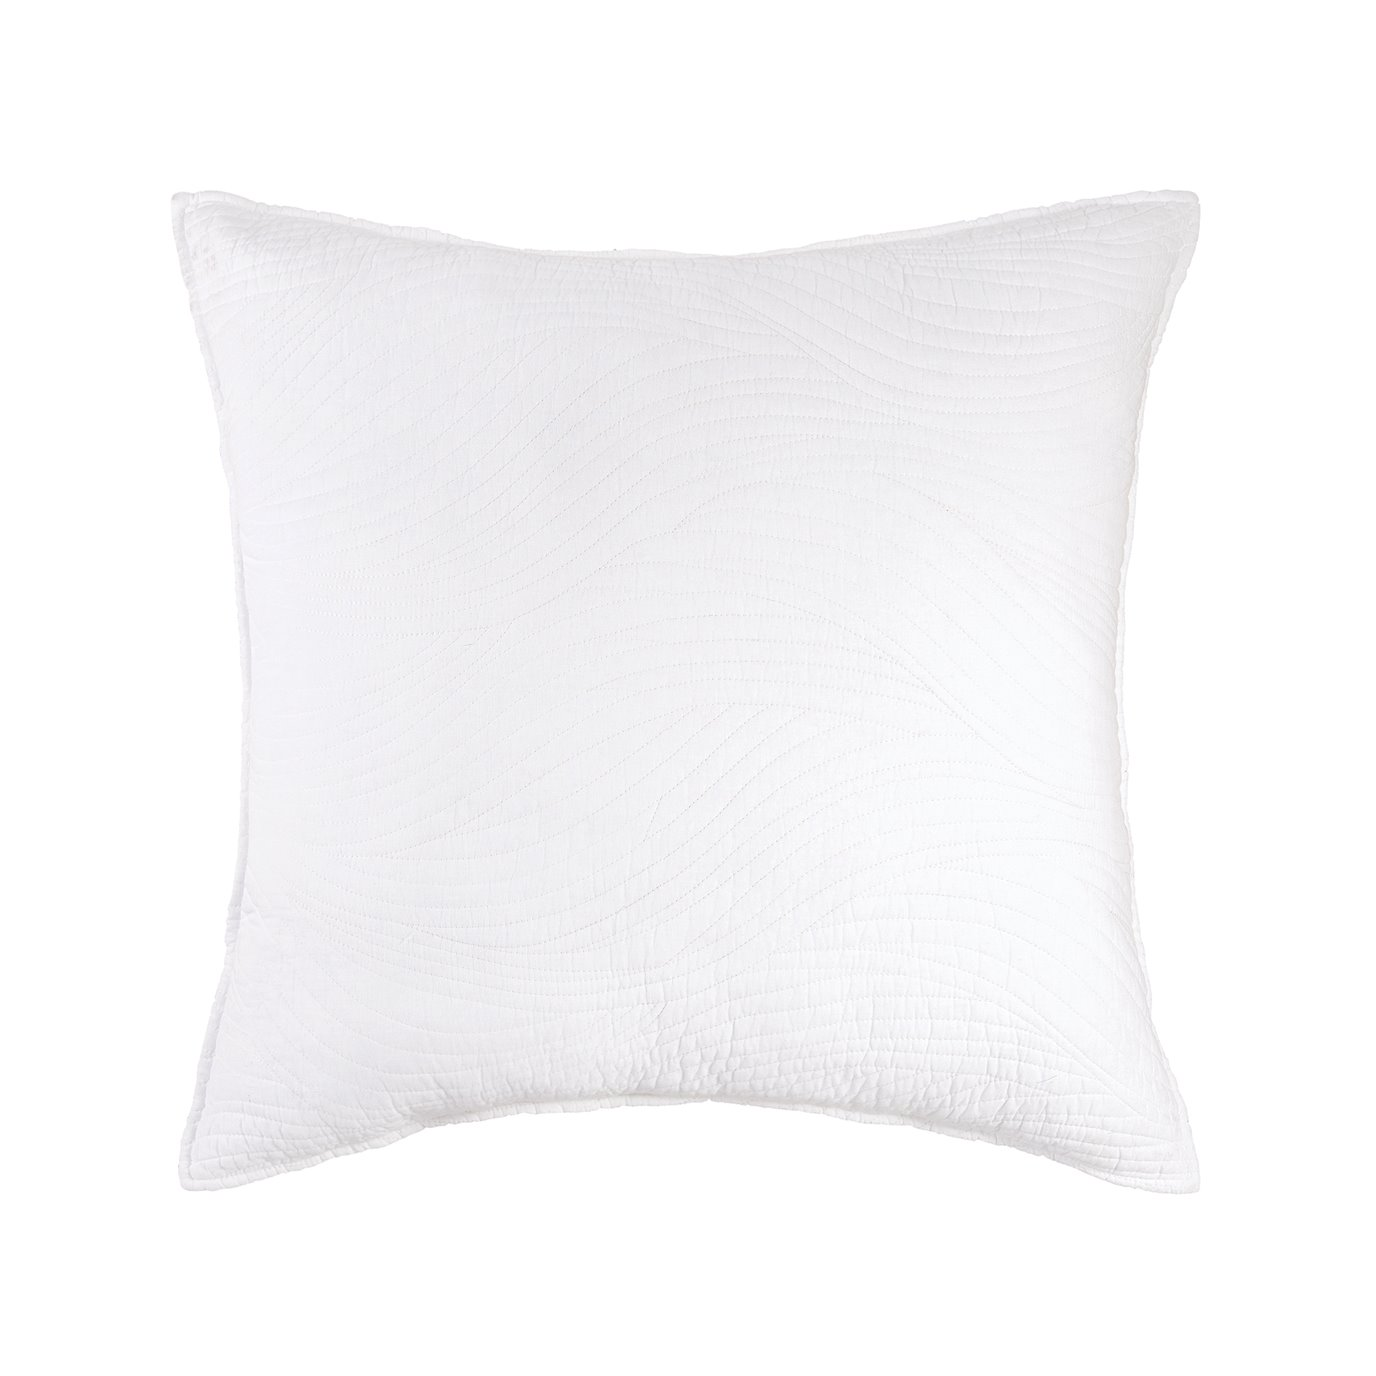 Tranquil Waves White Euro Sham